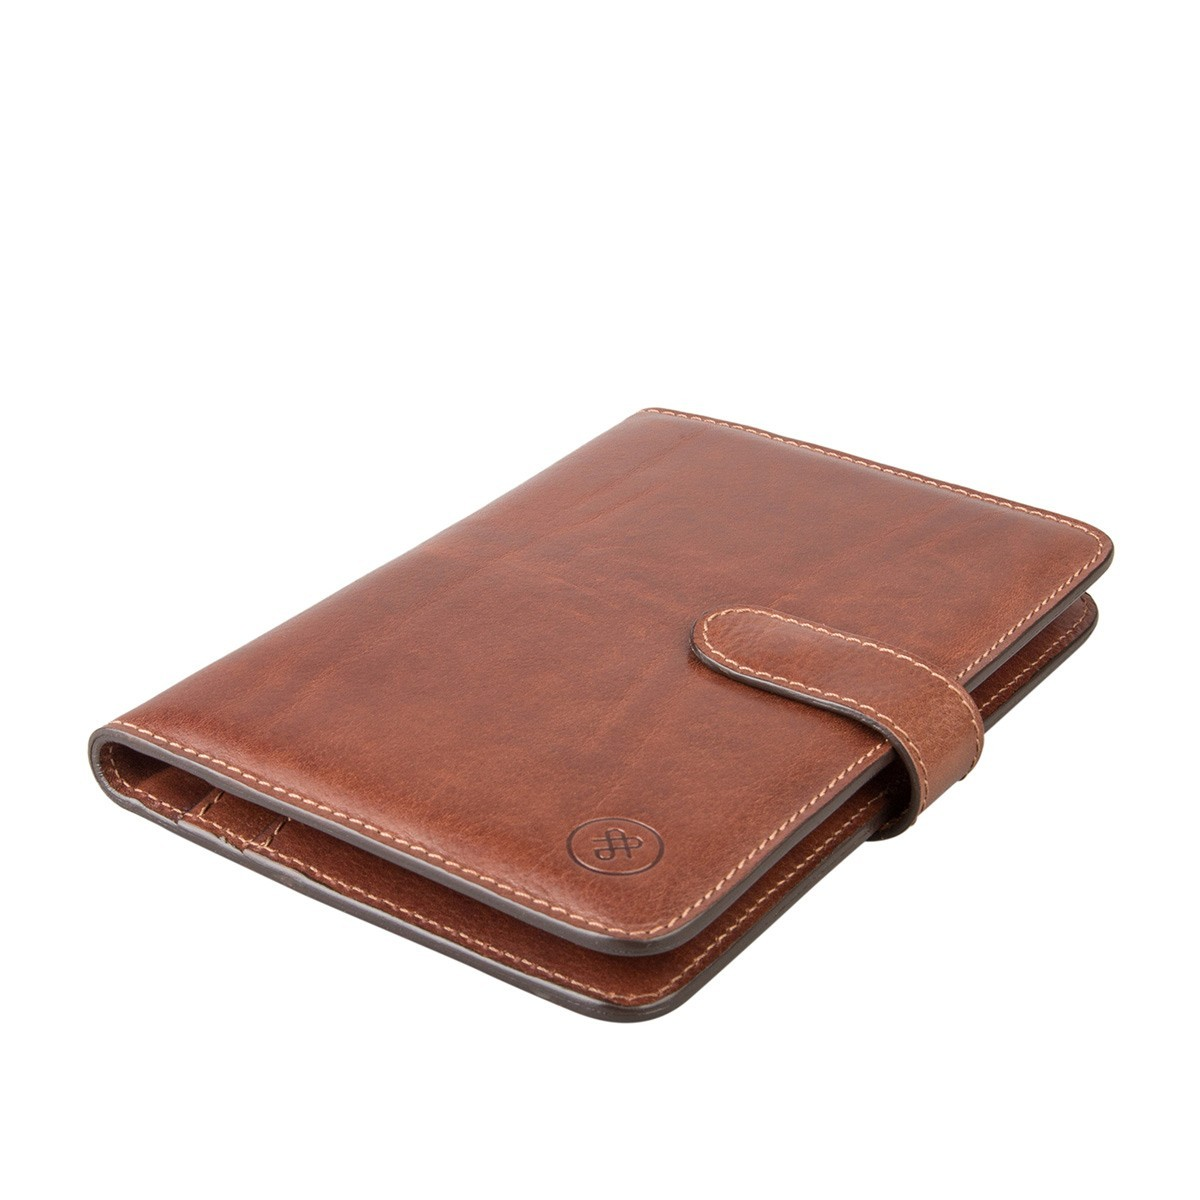 The Vieste Italian Leather Travel Document Wallet